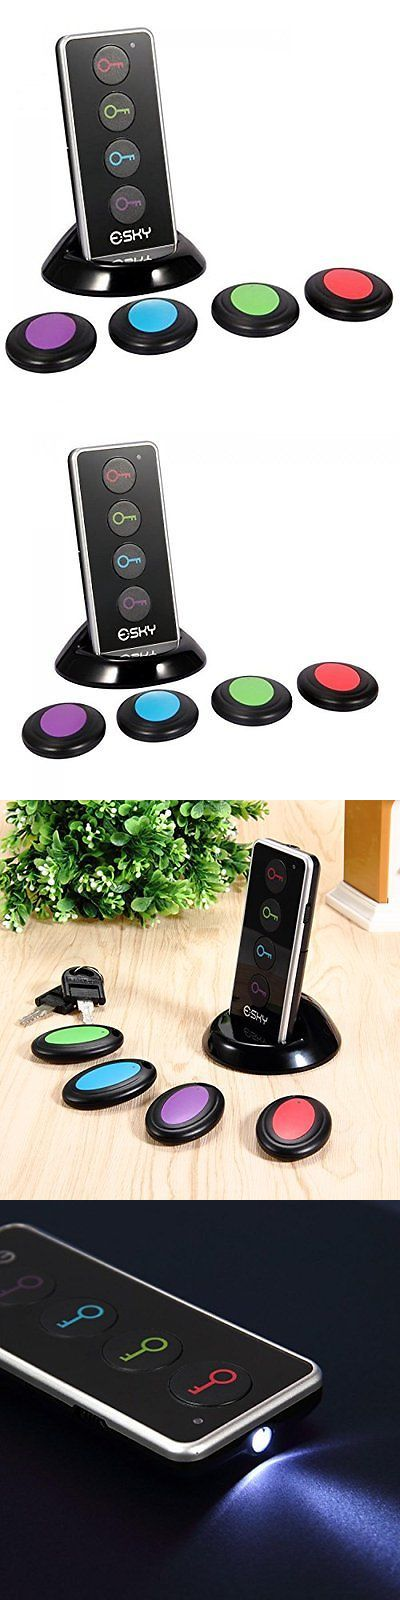 LED Light Key Chains: Key Tags And Chains Wireless Rf Item Locator Key Finder Support Remote Control, Rf -> BUY IT NOW ONLY: $30.24 on eBay!